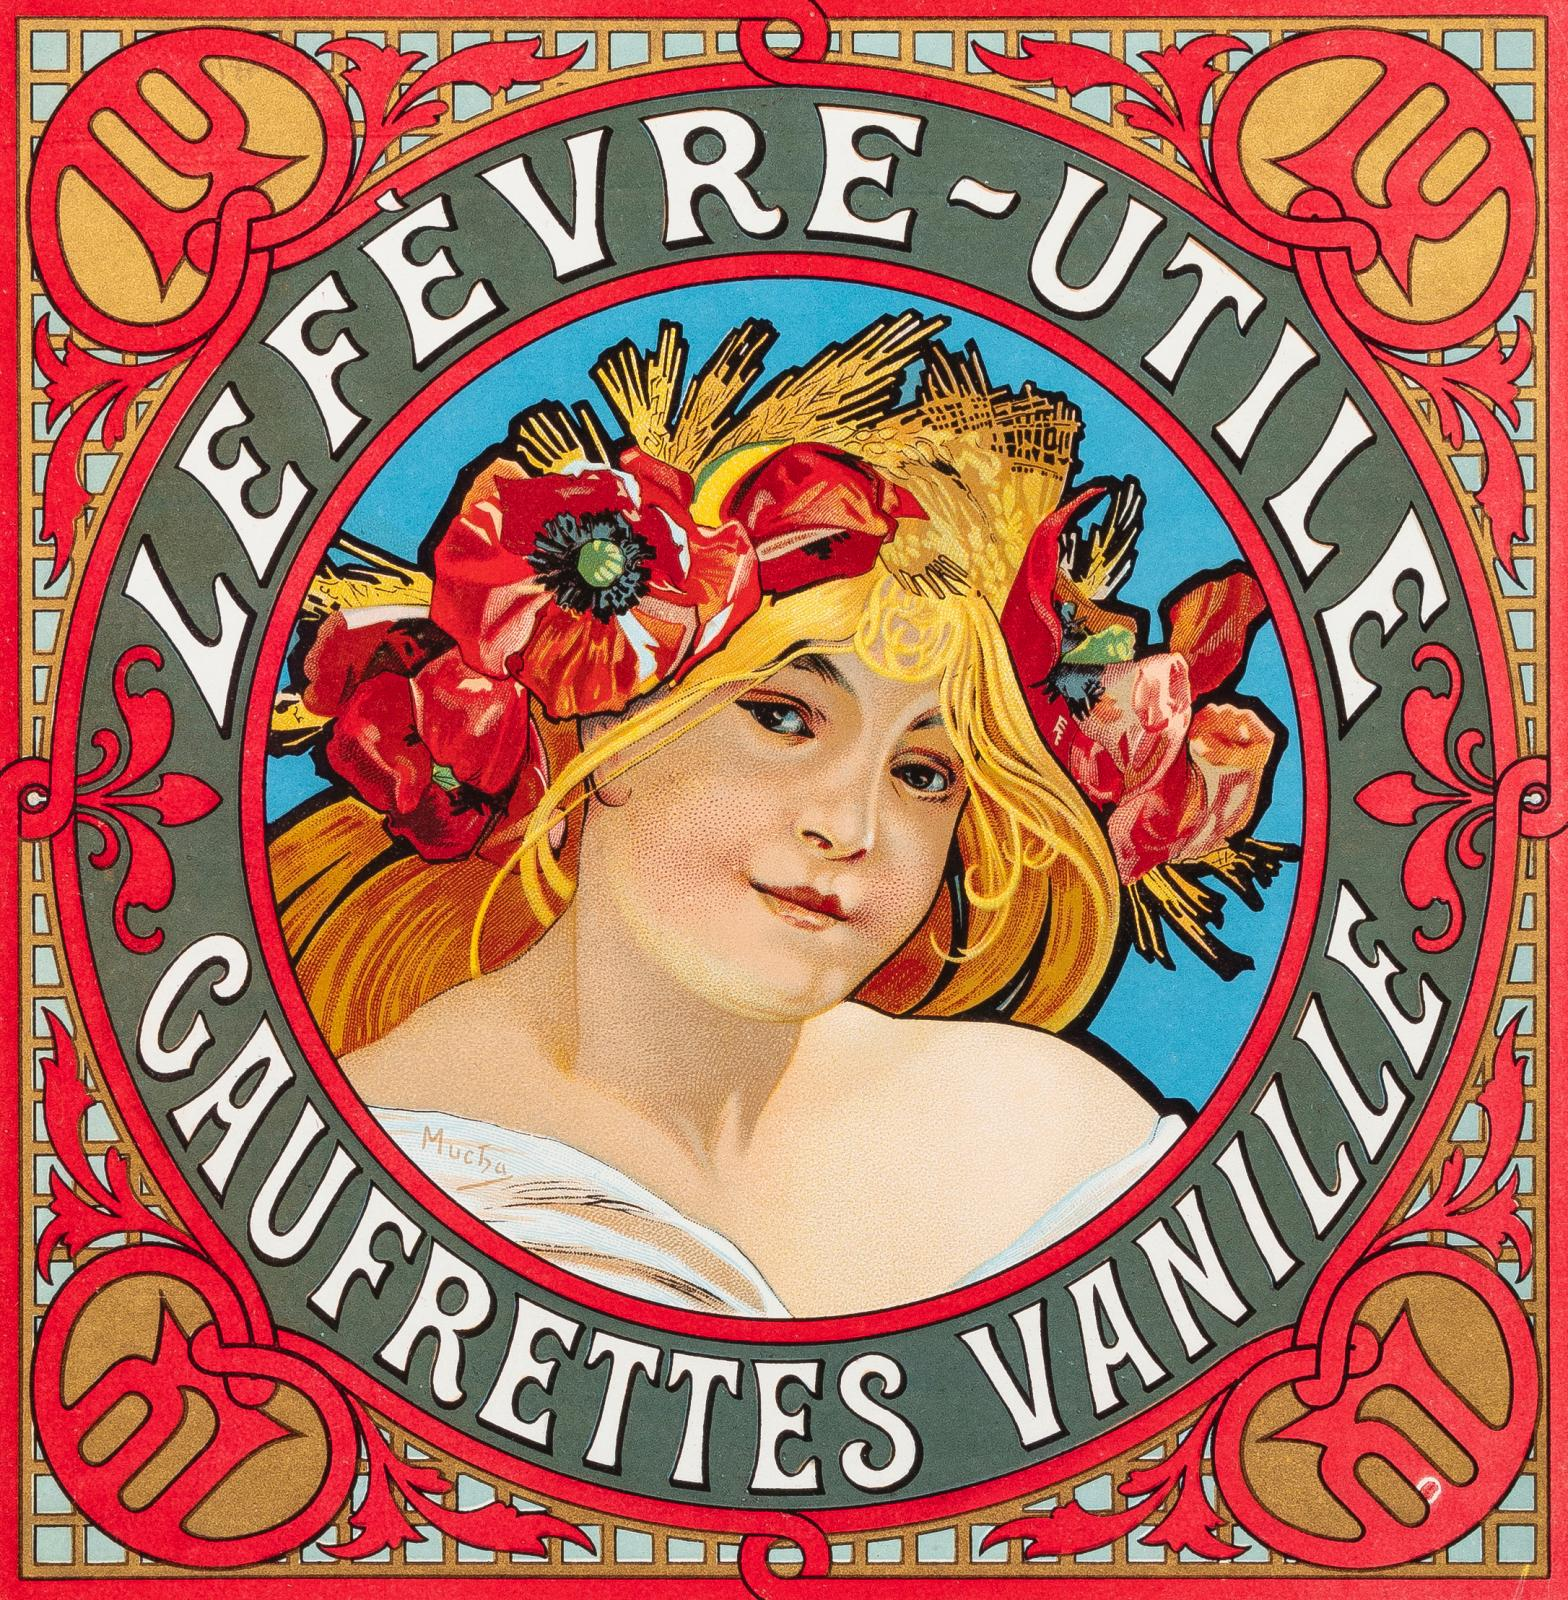 Alphonse Mucha (1860-1939), c. 1898, chromolithograph on paper, label for boxes of LU vanilla wafers, Ferdinand Champenois printing works, Paris, 25.6